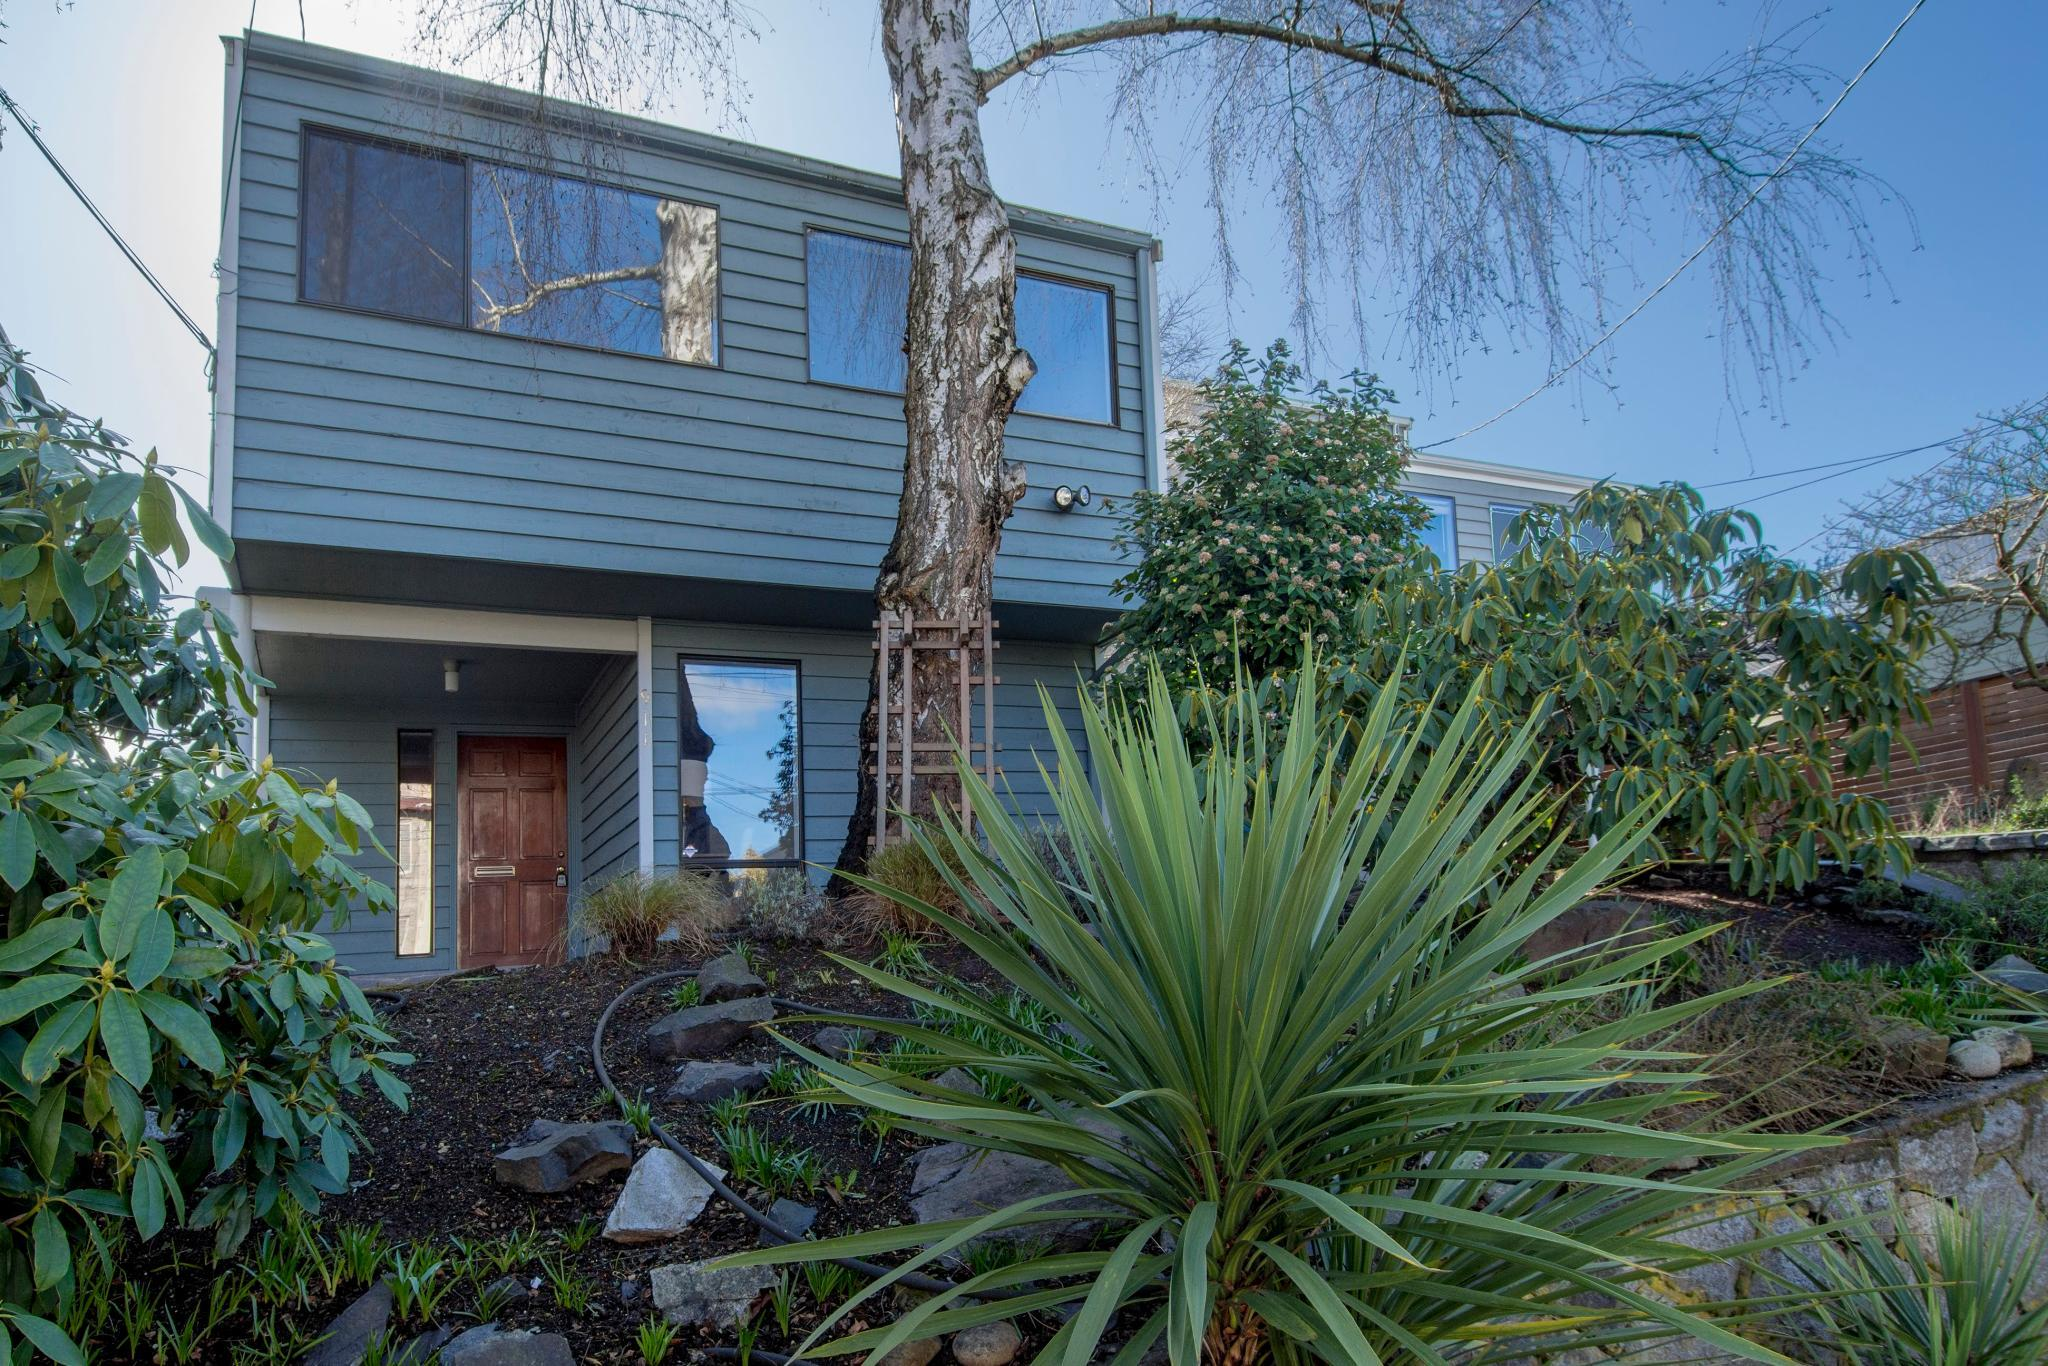 911 N 72nd St For Rent - Seattle, WA | Trulia